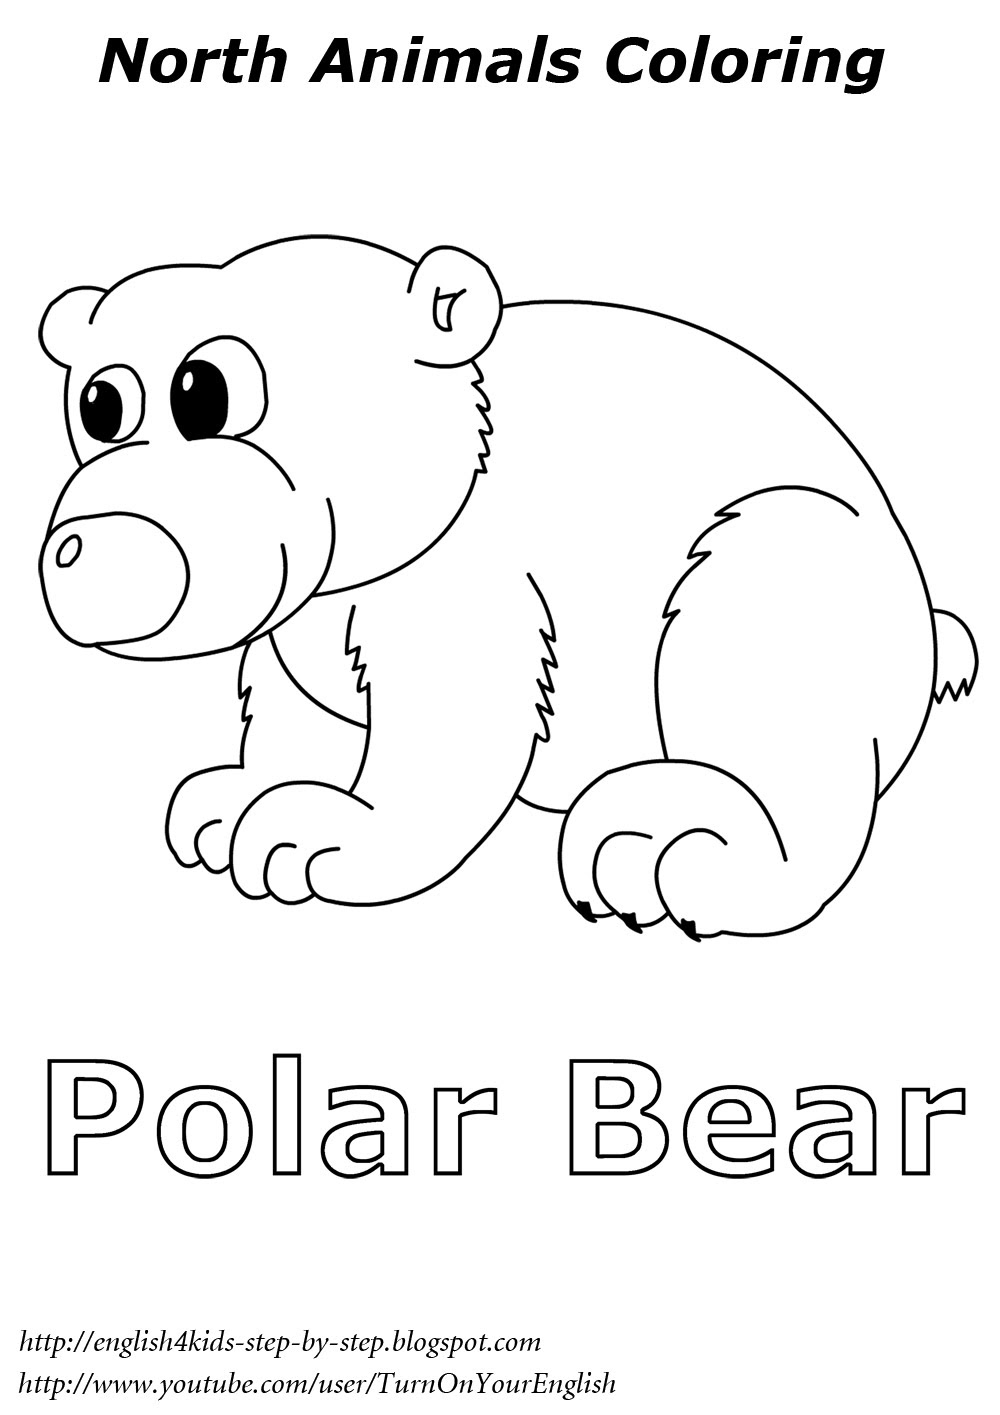 12 Best Images of Polar Animal Worksheets - Arctic Animals ...